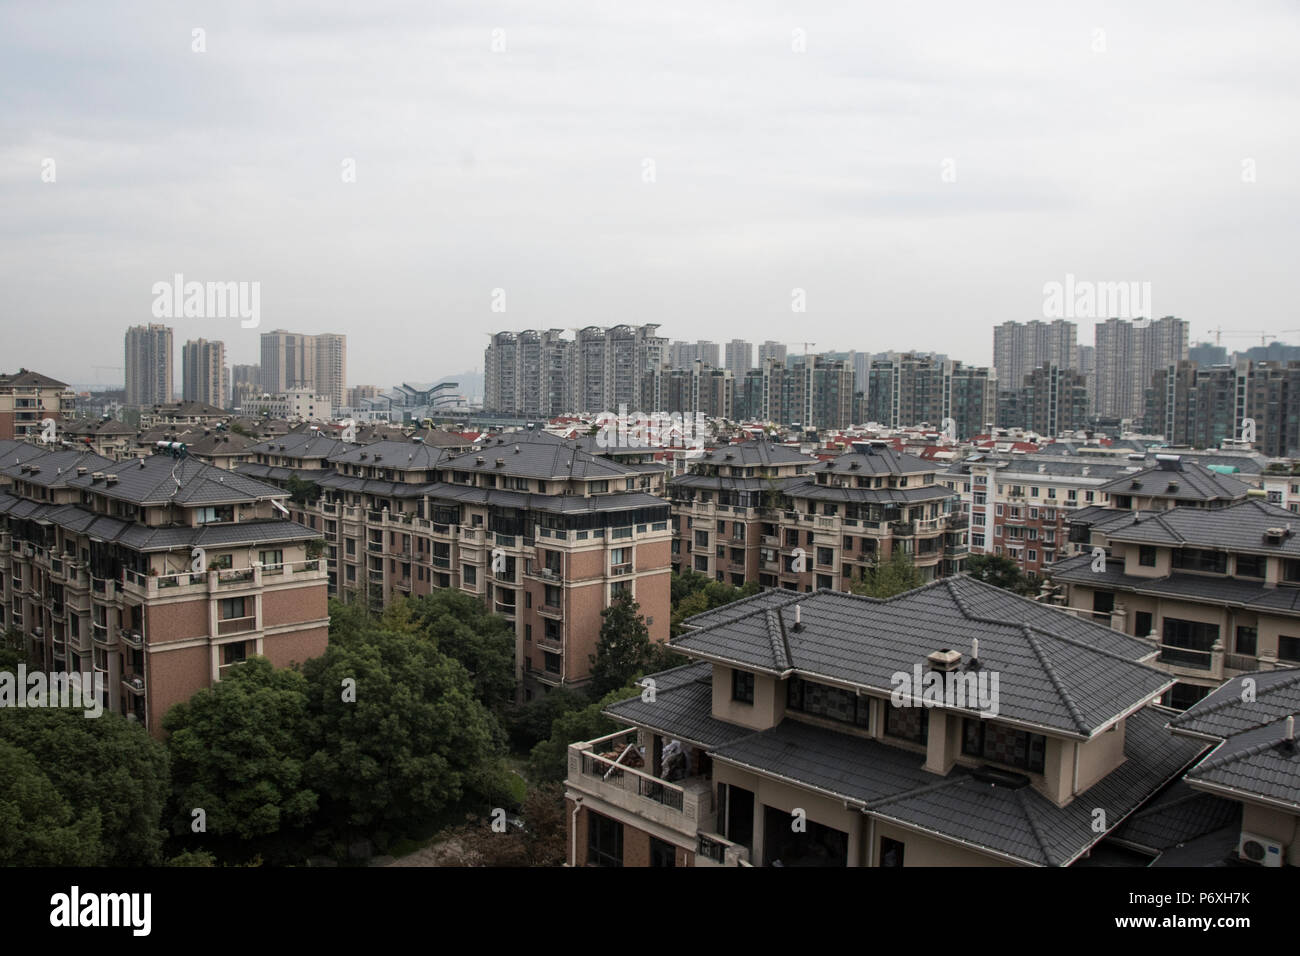 View of Hangzhou, Zeijiang Province, Peoples Republic of China - Stock Image